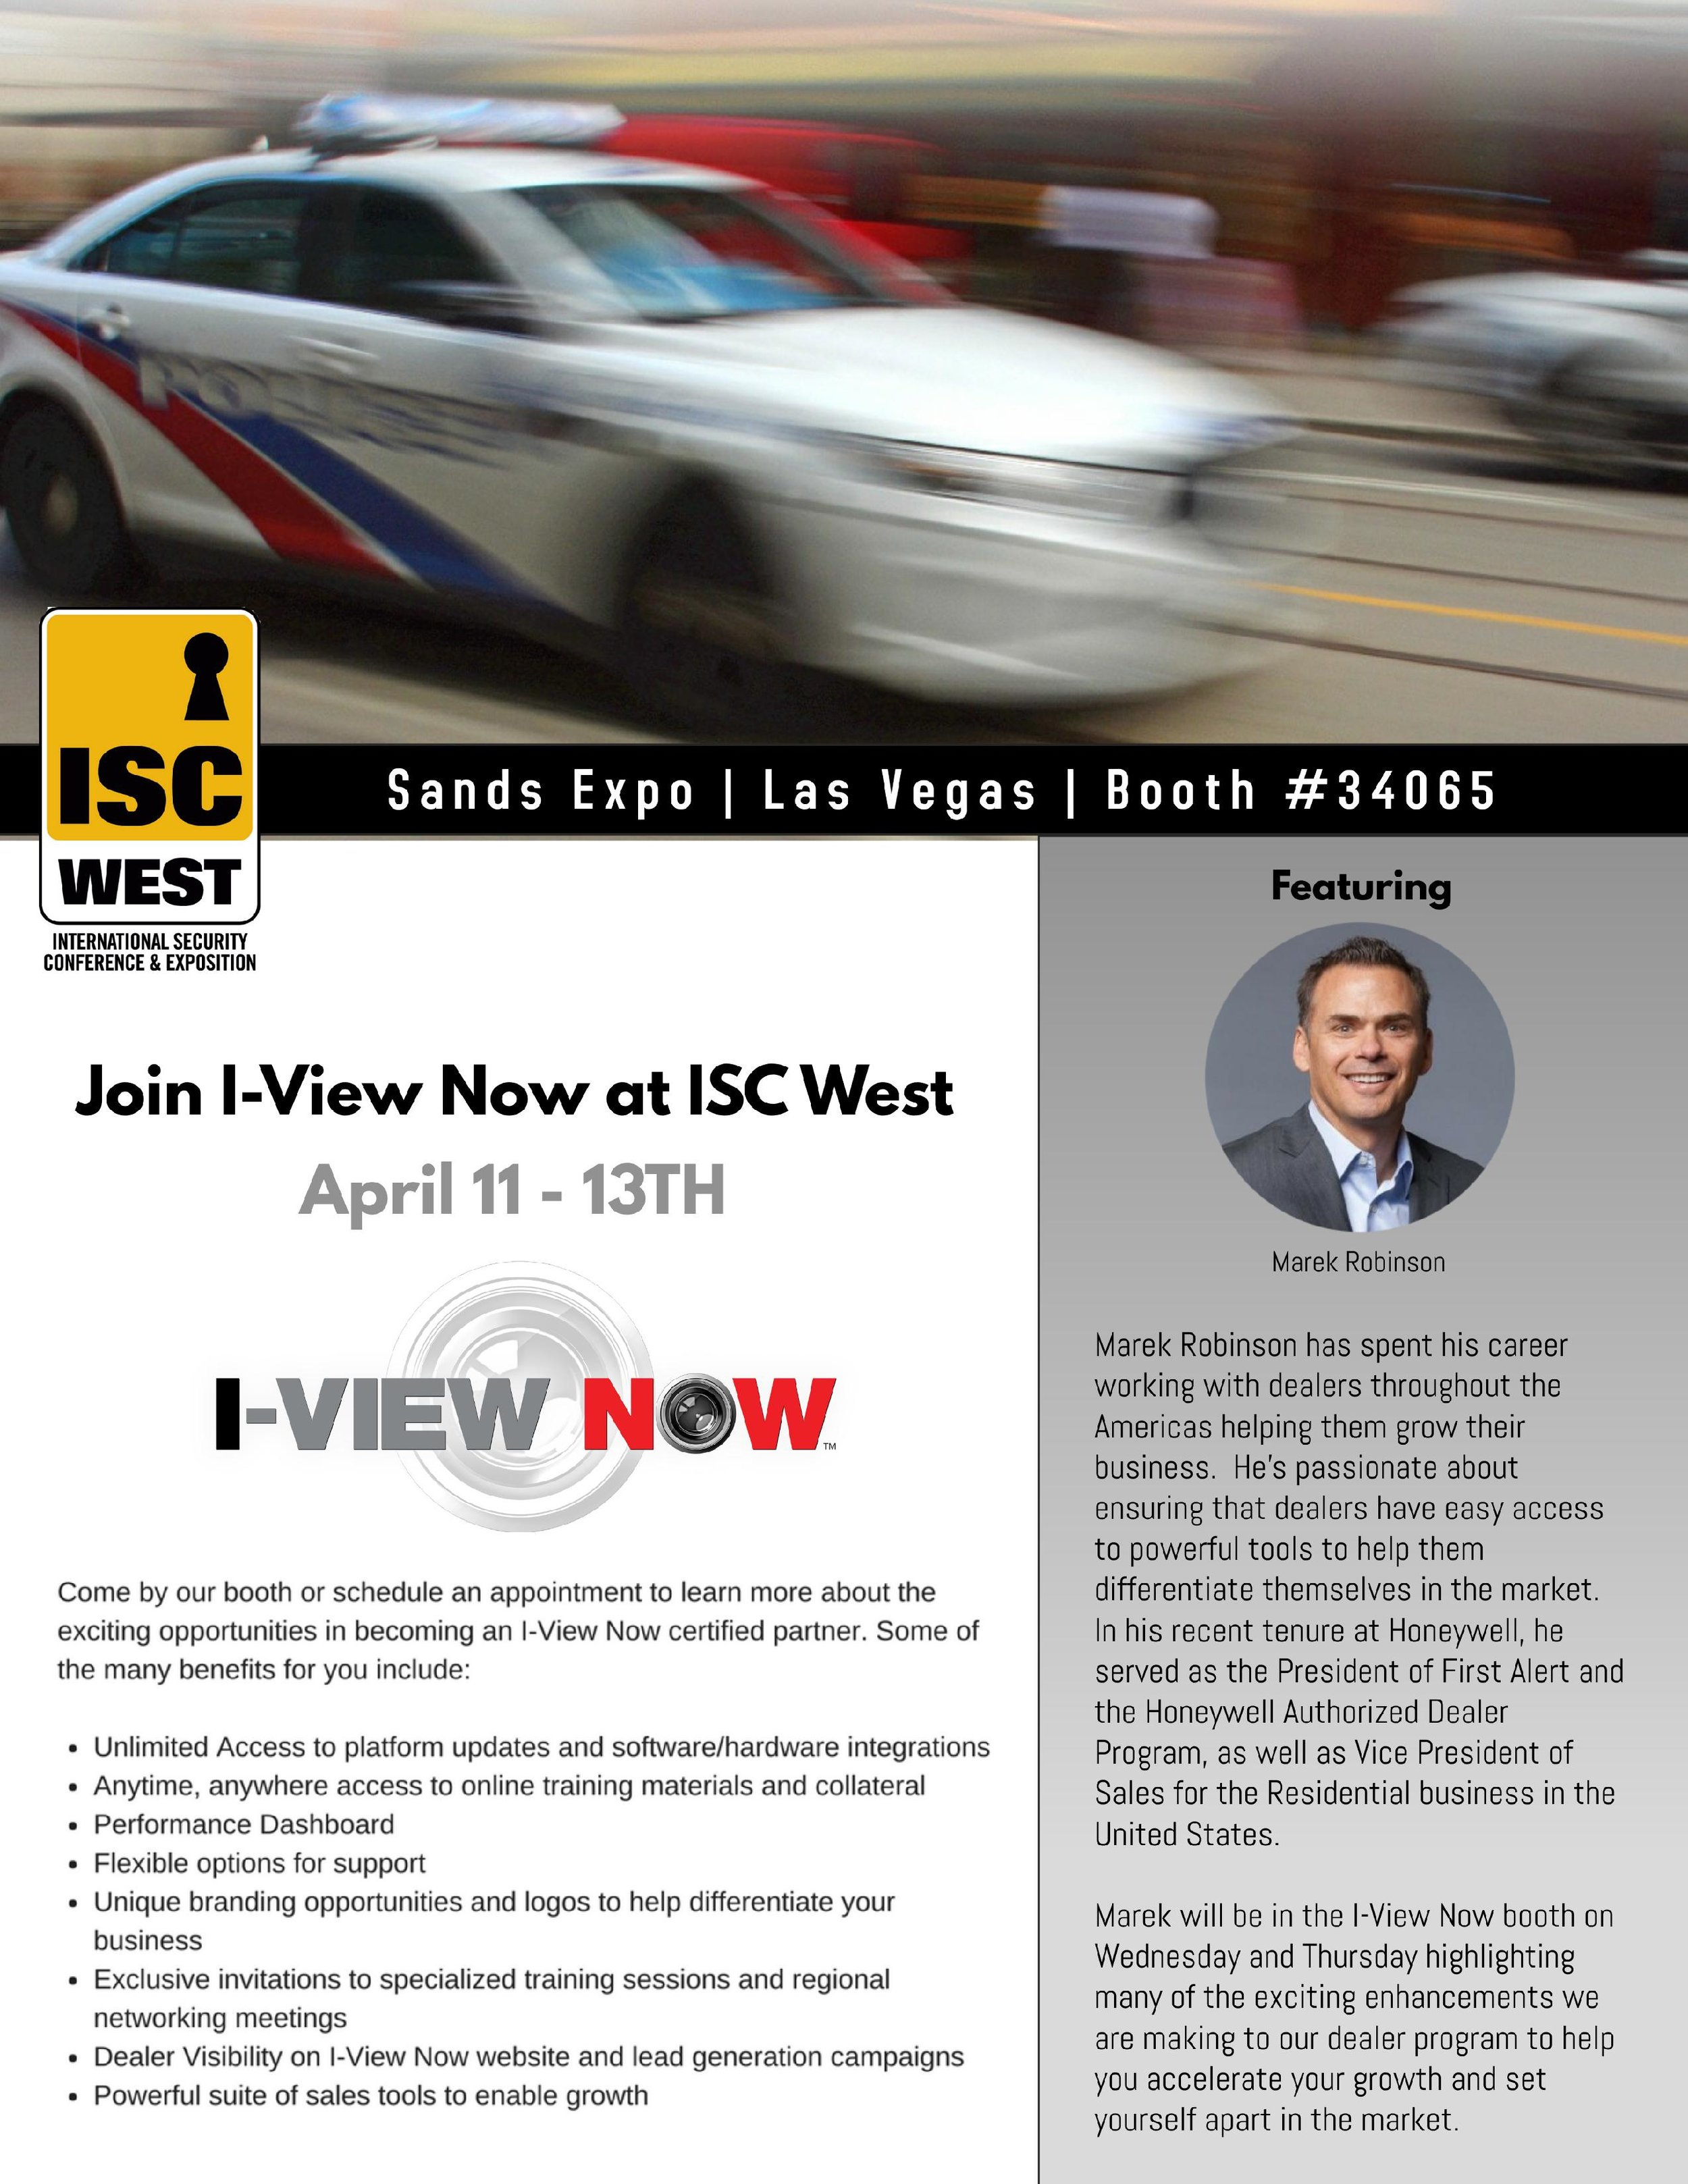 I-View-Now-at-ISC-West-page-001.jpg